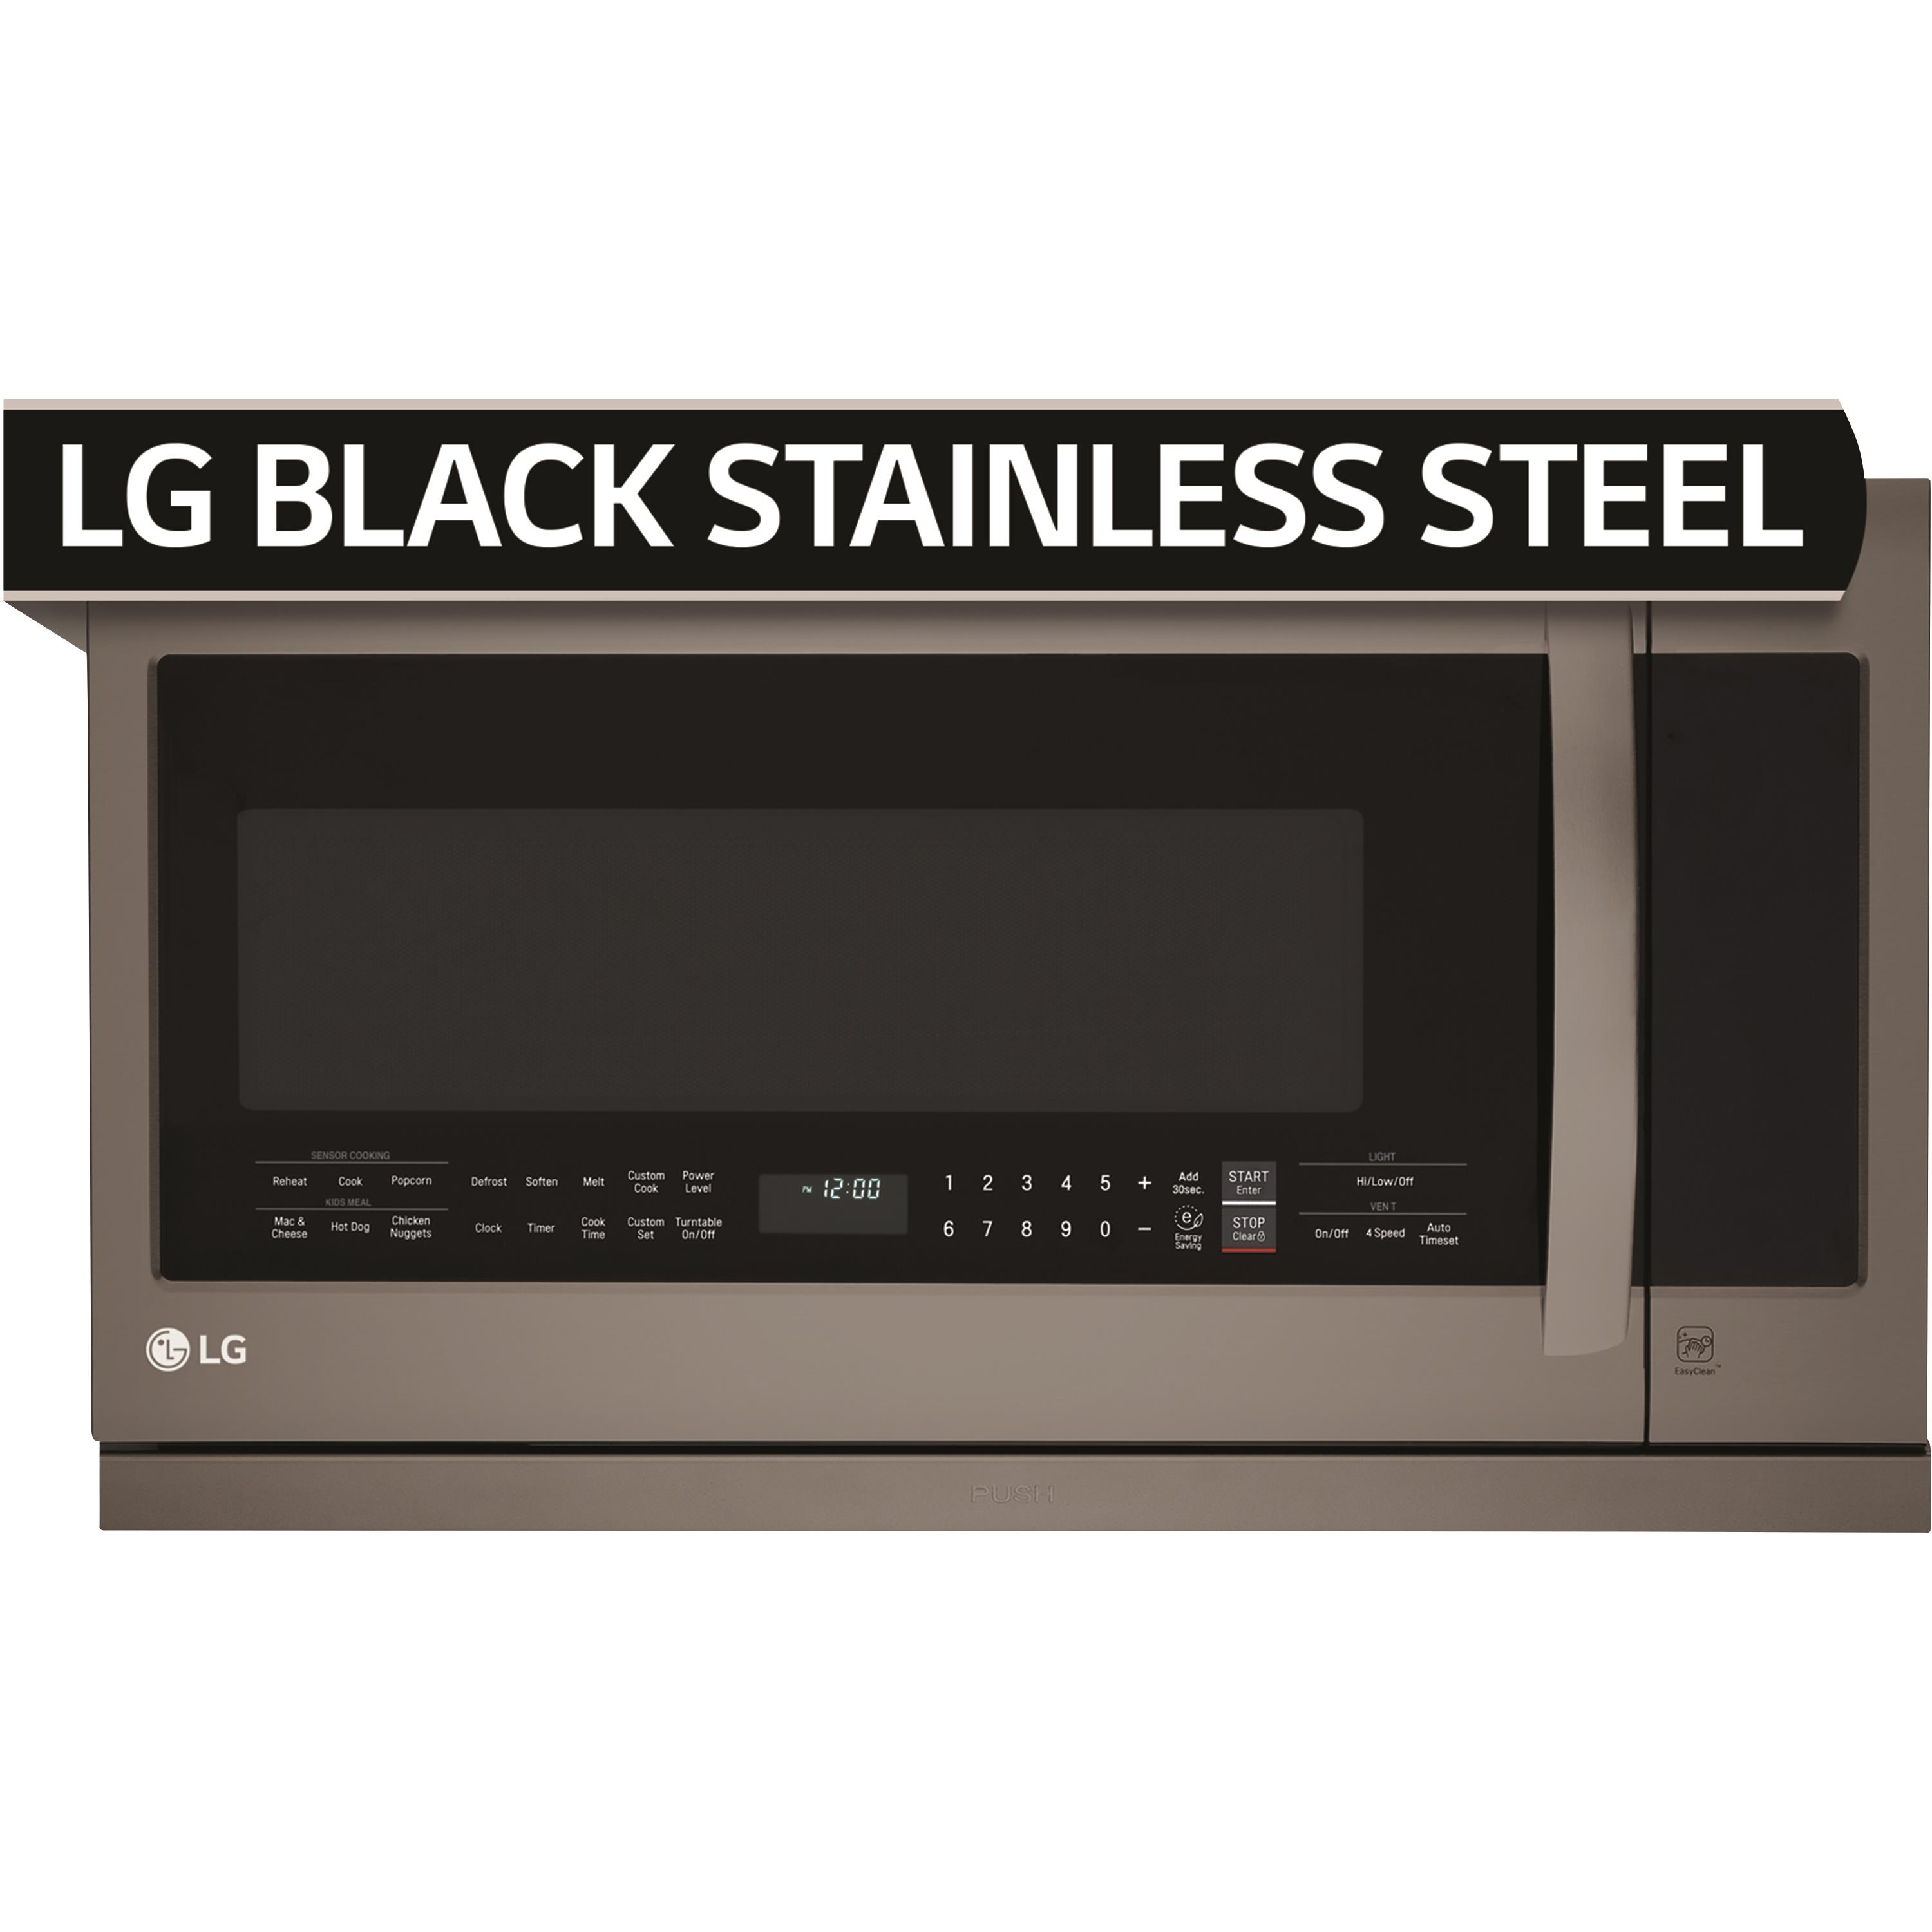 LG Appliances Microwaves- LG 2.2 Cu. Ft. Over the Range Microwave - Item Number: LMHM2237BD